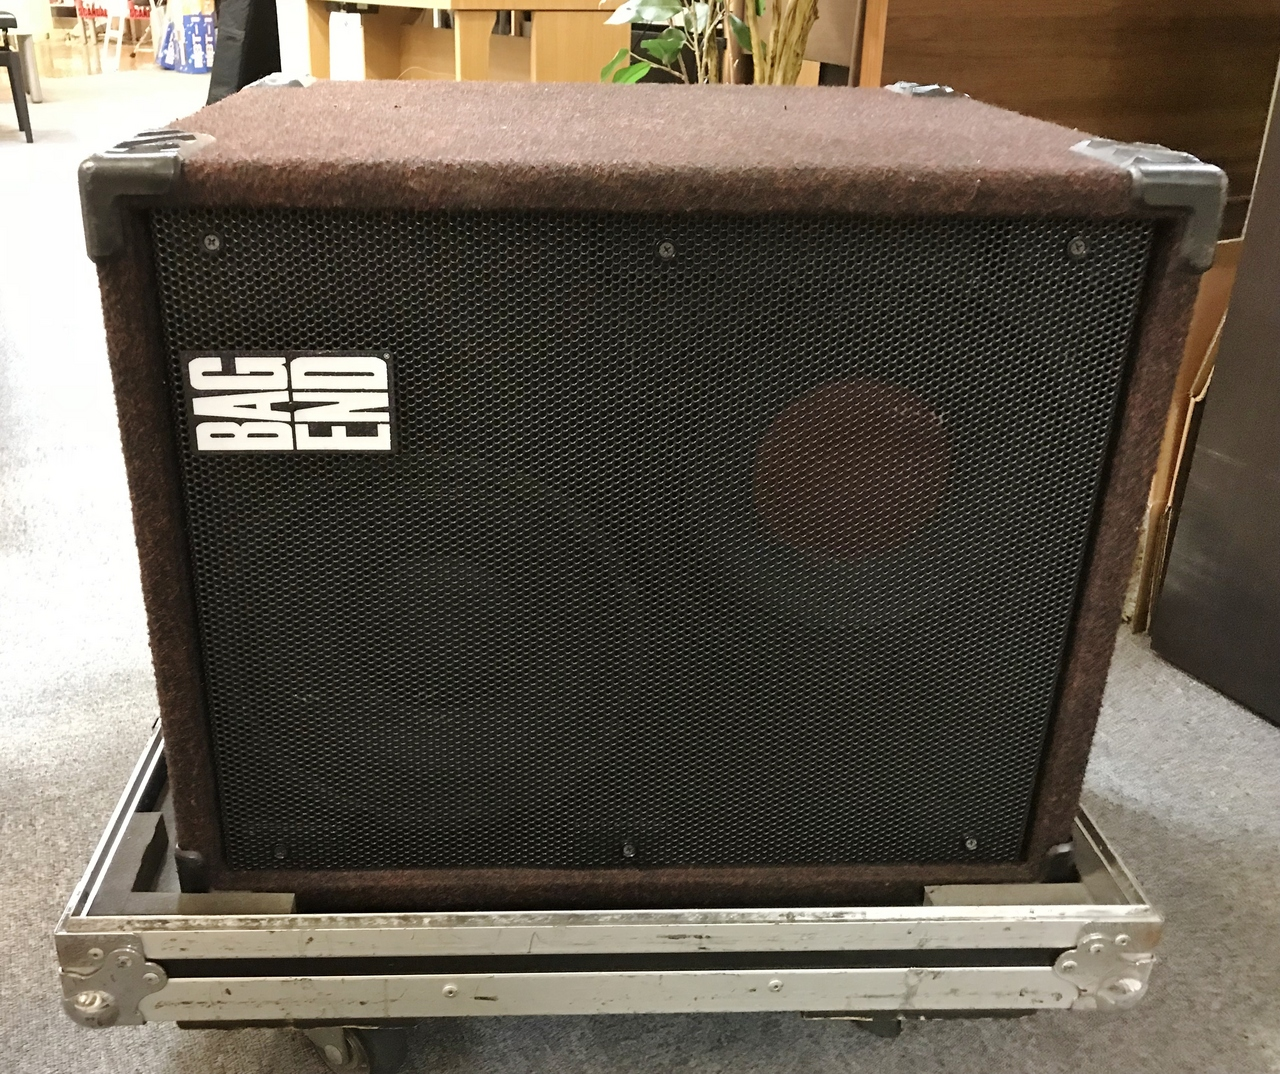 BAGEND D10BX-D + rack case [used article]